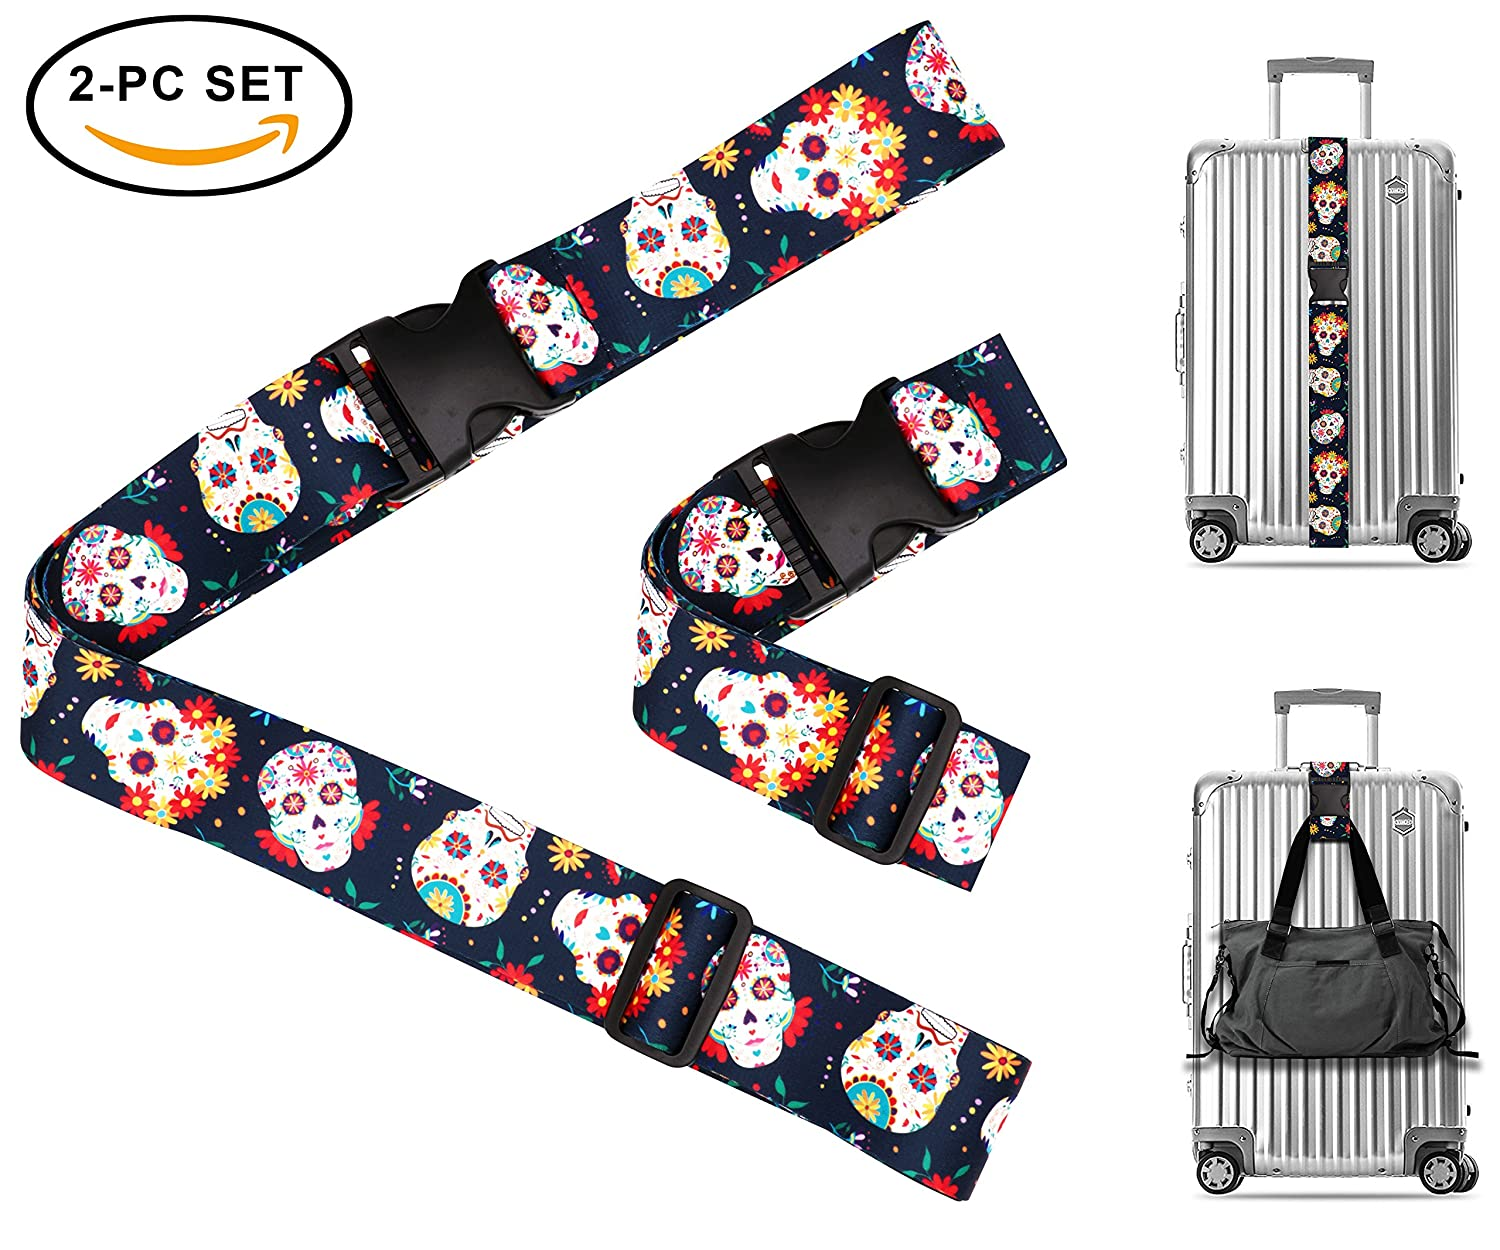 Bubbly Color Dots Travel Luggage Strap Suitcase Security Belt. Heavy Duty & Adjustable. Must Have Travel Accessories. TSA Compliant. 1 Luggage Strap & 1 Add A Bag Strap. 2-Piece Set. One In A Millionaire LUG-STRP-A-00009